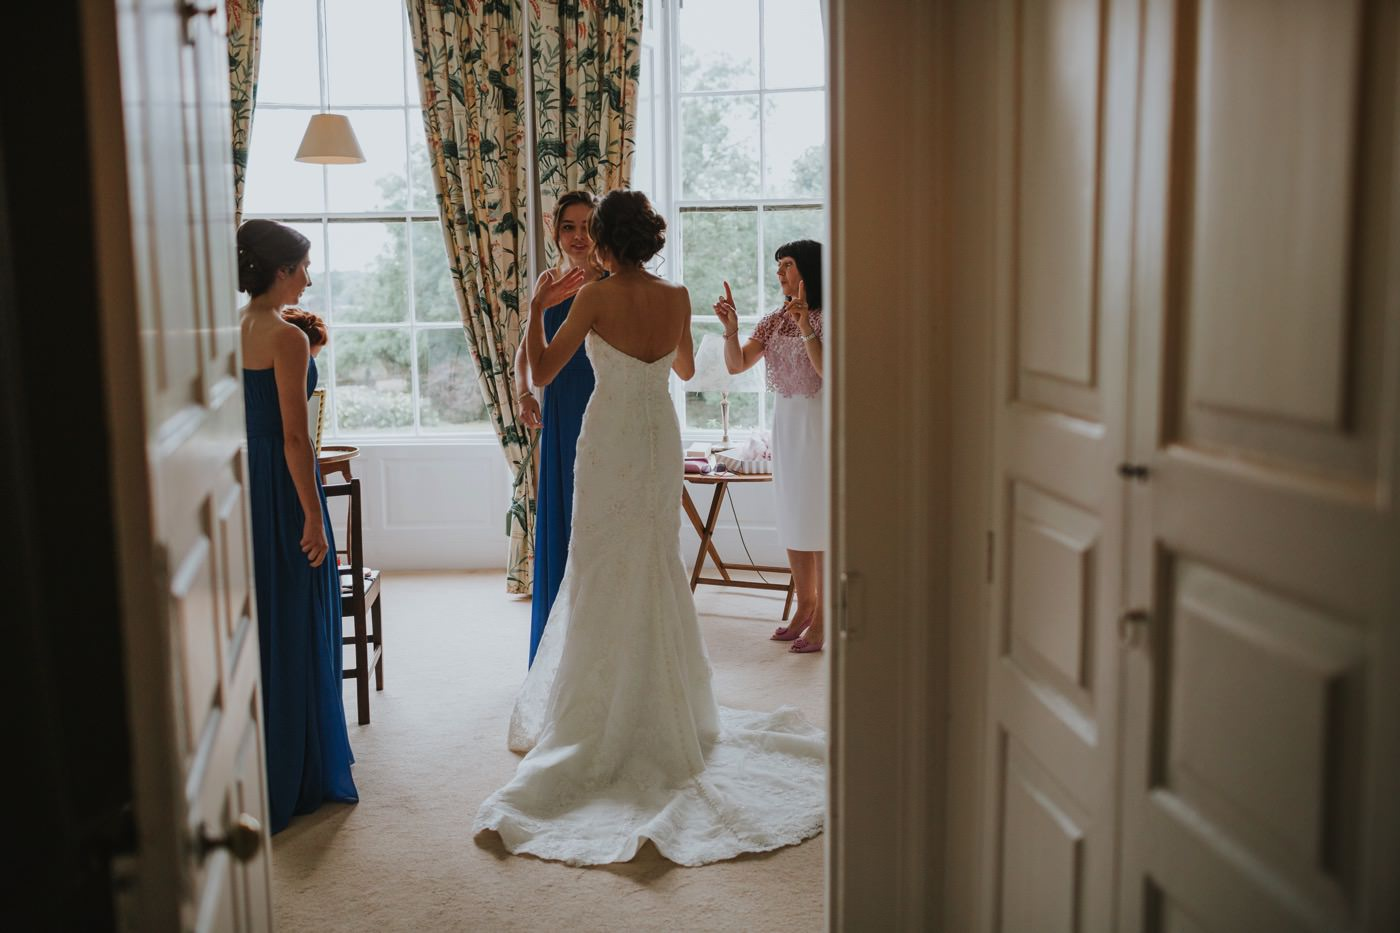 Matt & Emma | Hooton Pagnell Hall & Stable Arches 38